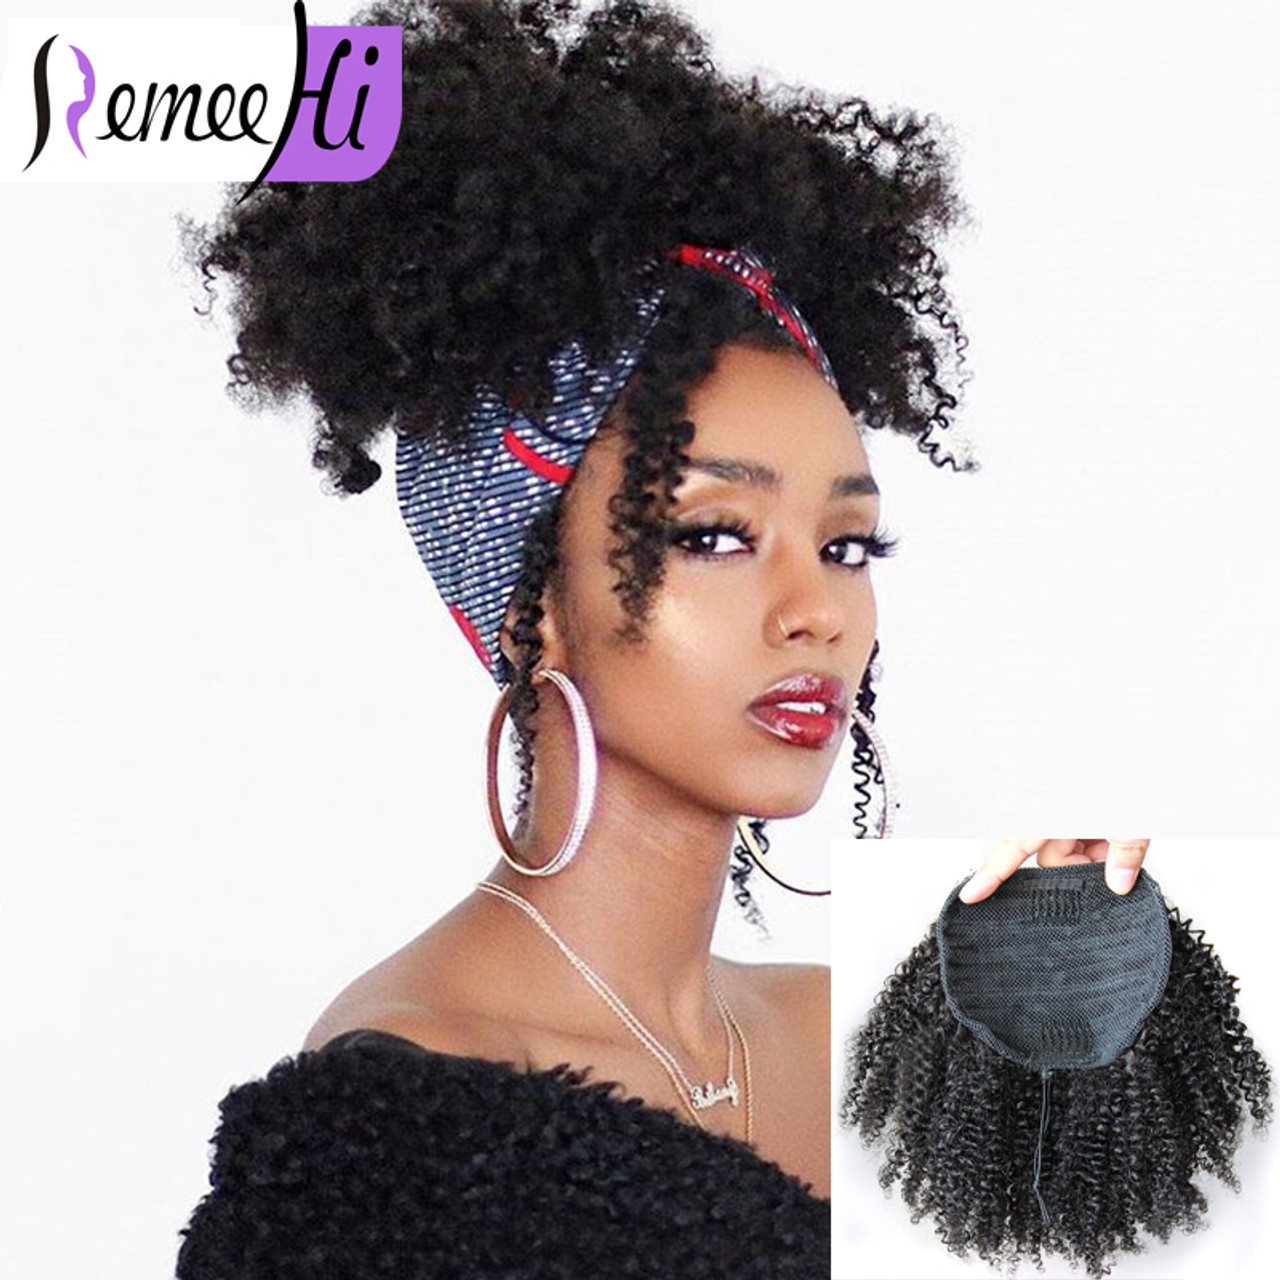 Human Hair Afro Kinky Curly Ponytail Extensions For Black Women Kinky Curly Drawstring Ponytail Hairpieces Natural Kinky Pony Tail Curl 160g Curly